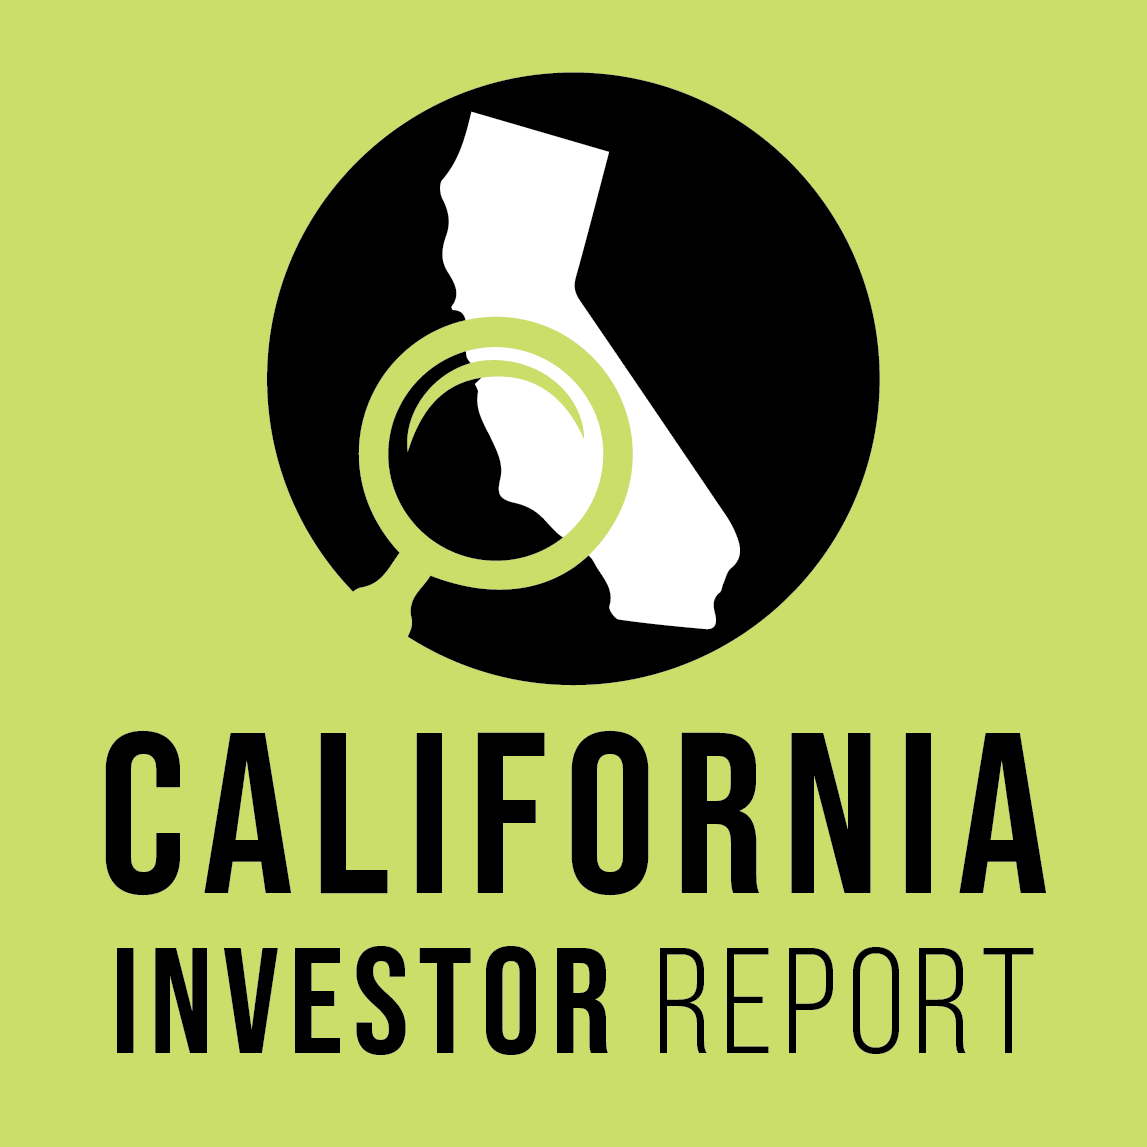 California Investor Report